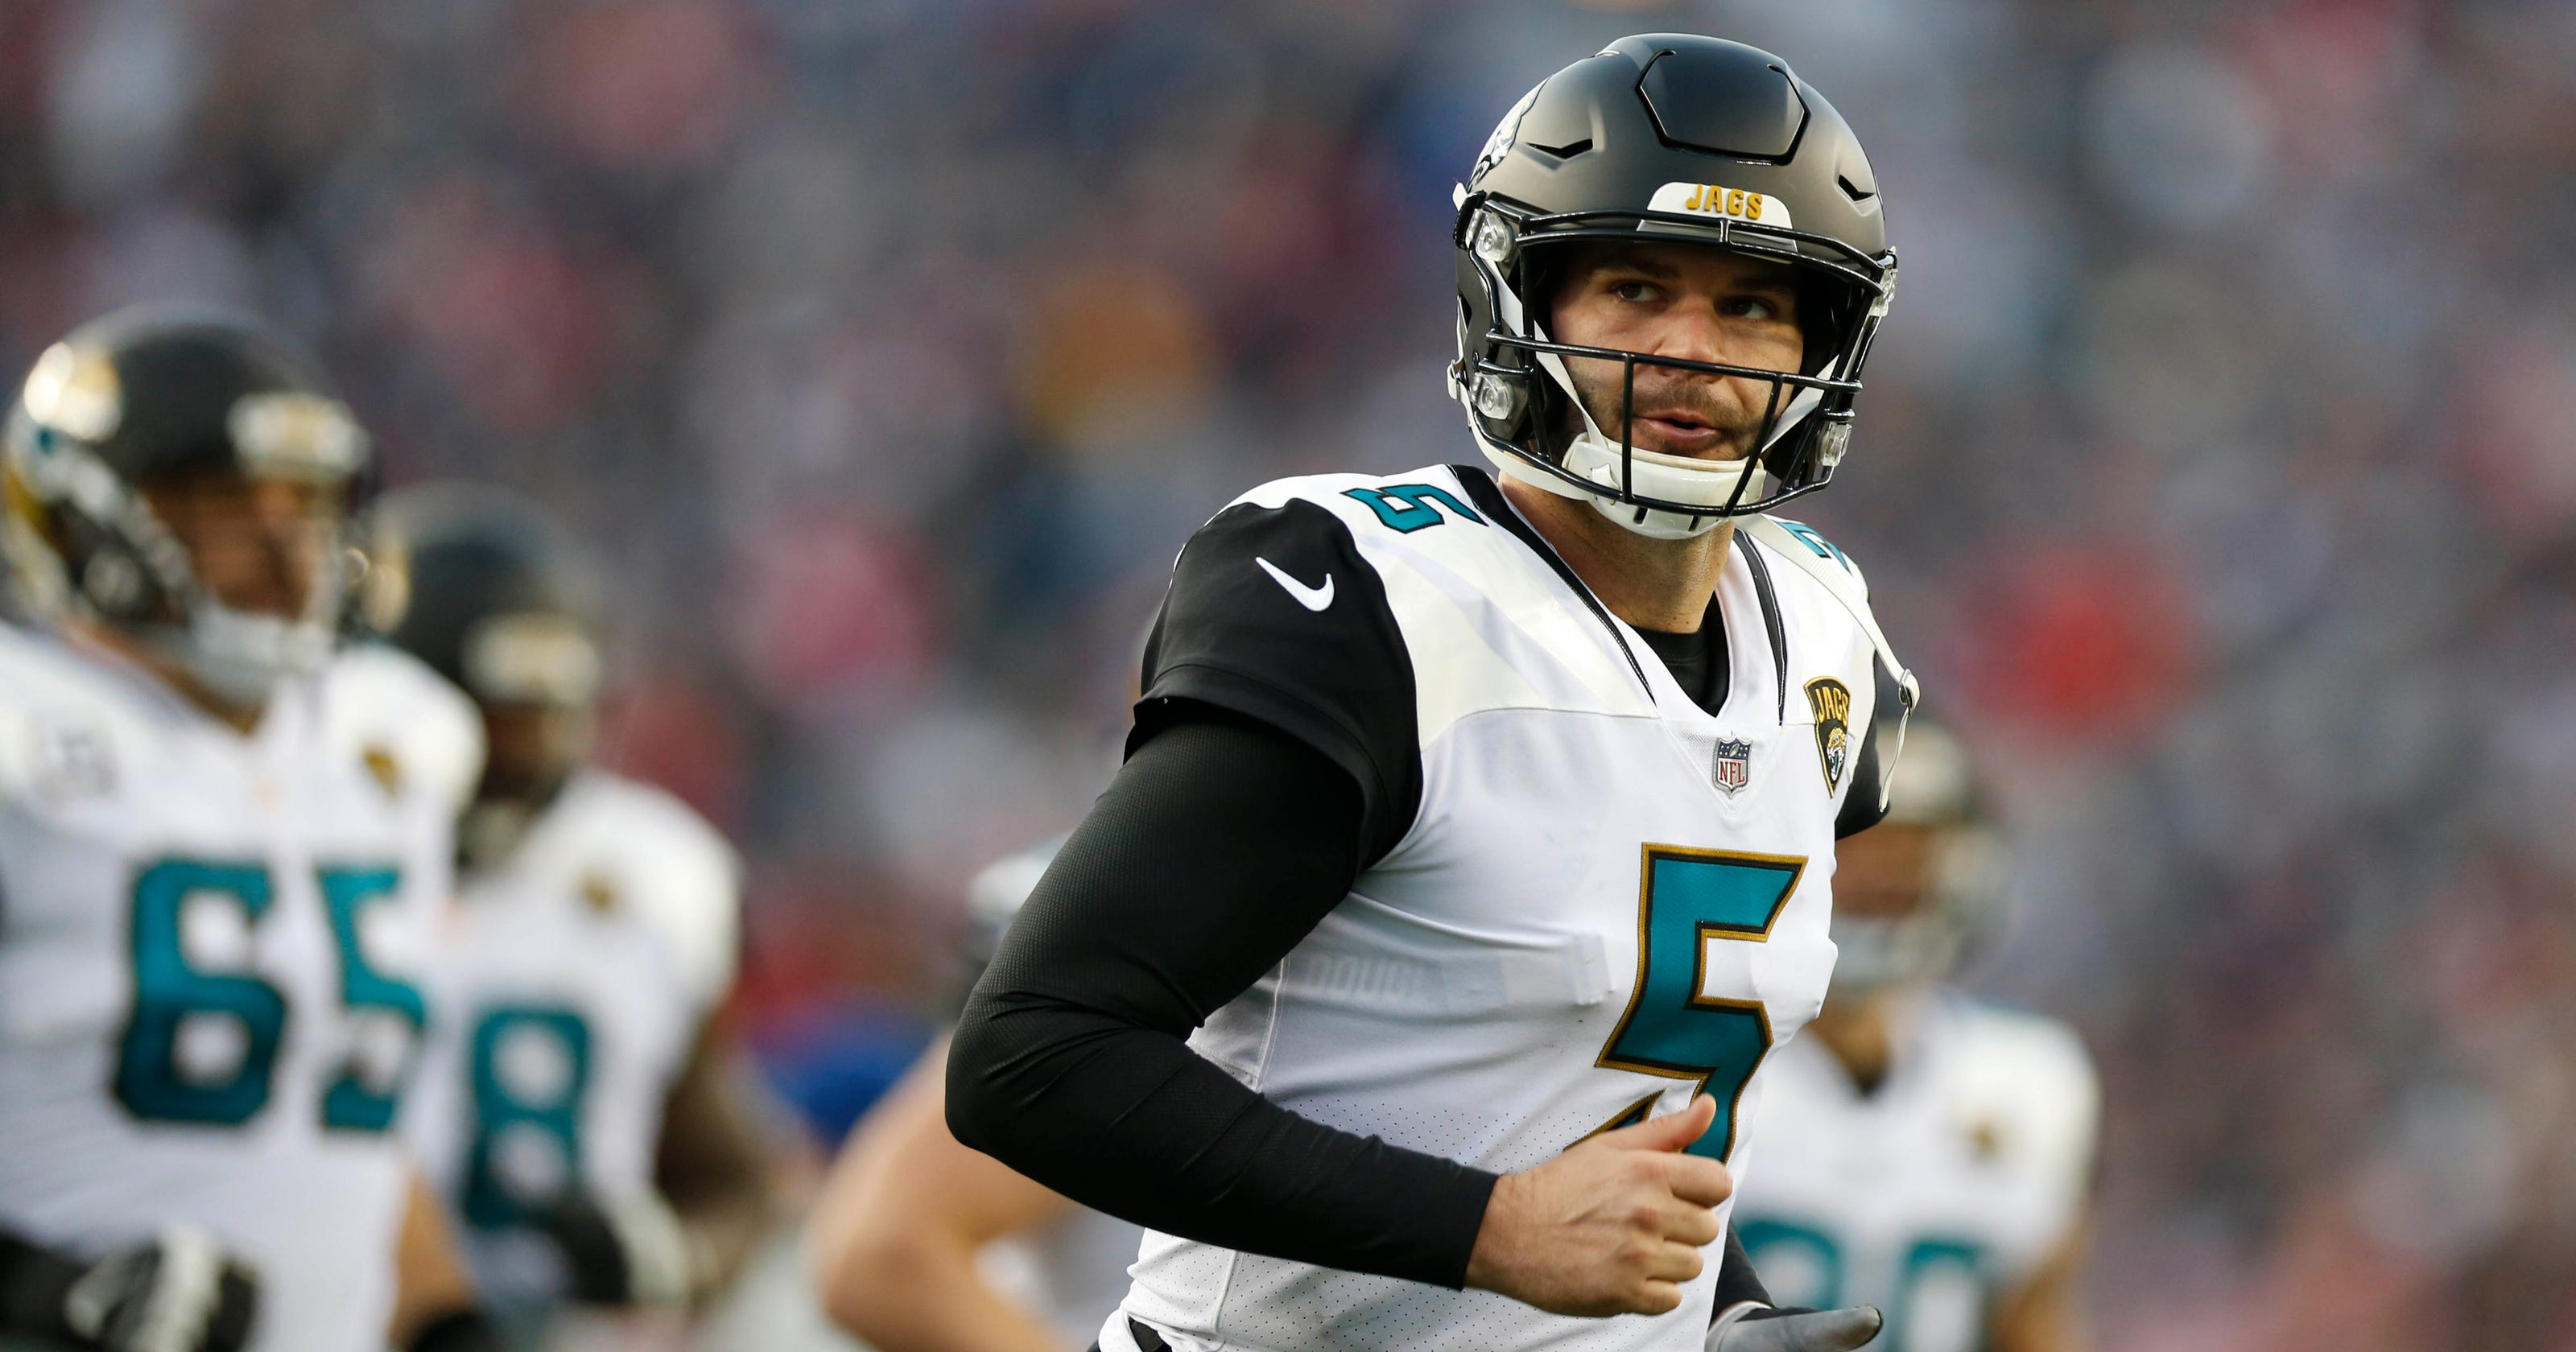 b8de9a46e Jaguars training camp questions  Blake Bortles holds key to offense s  progress